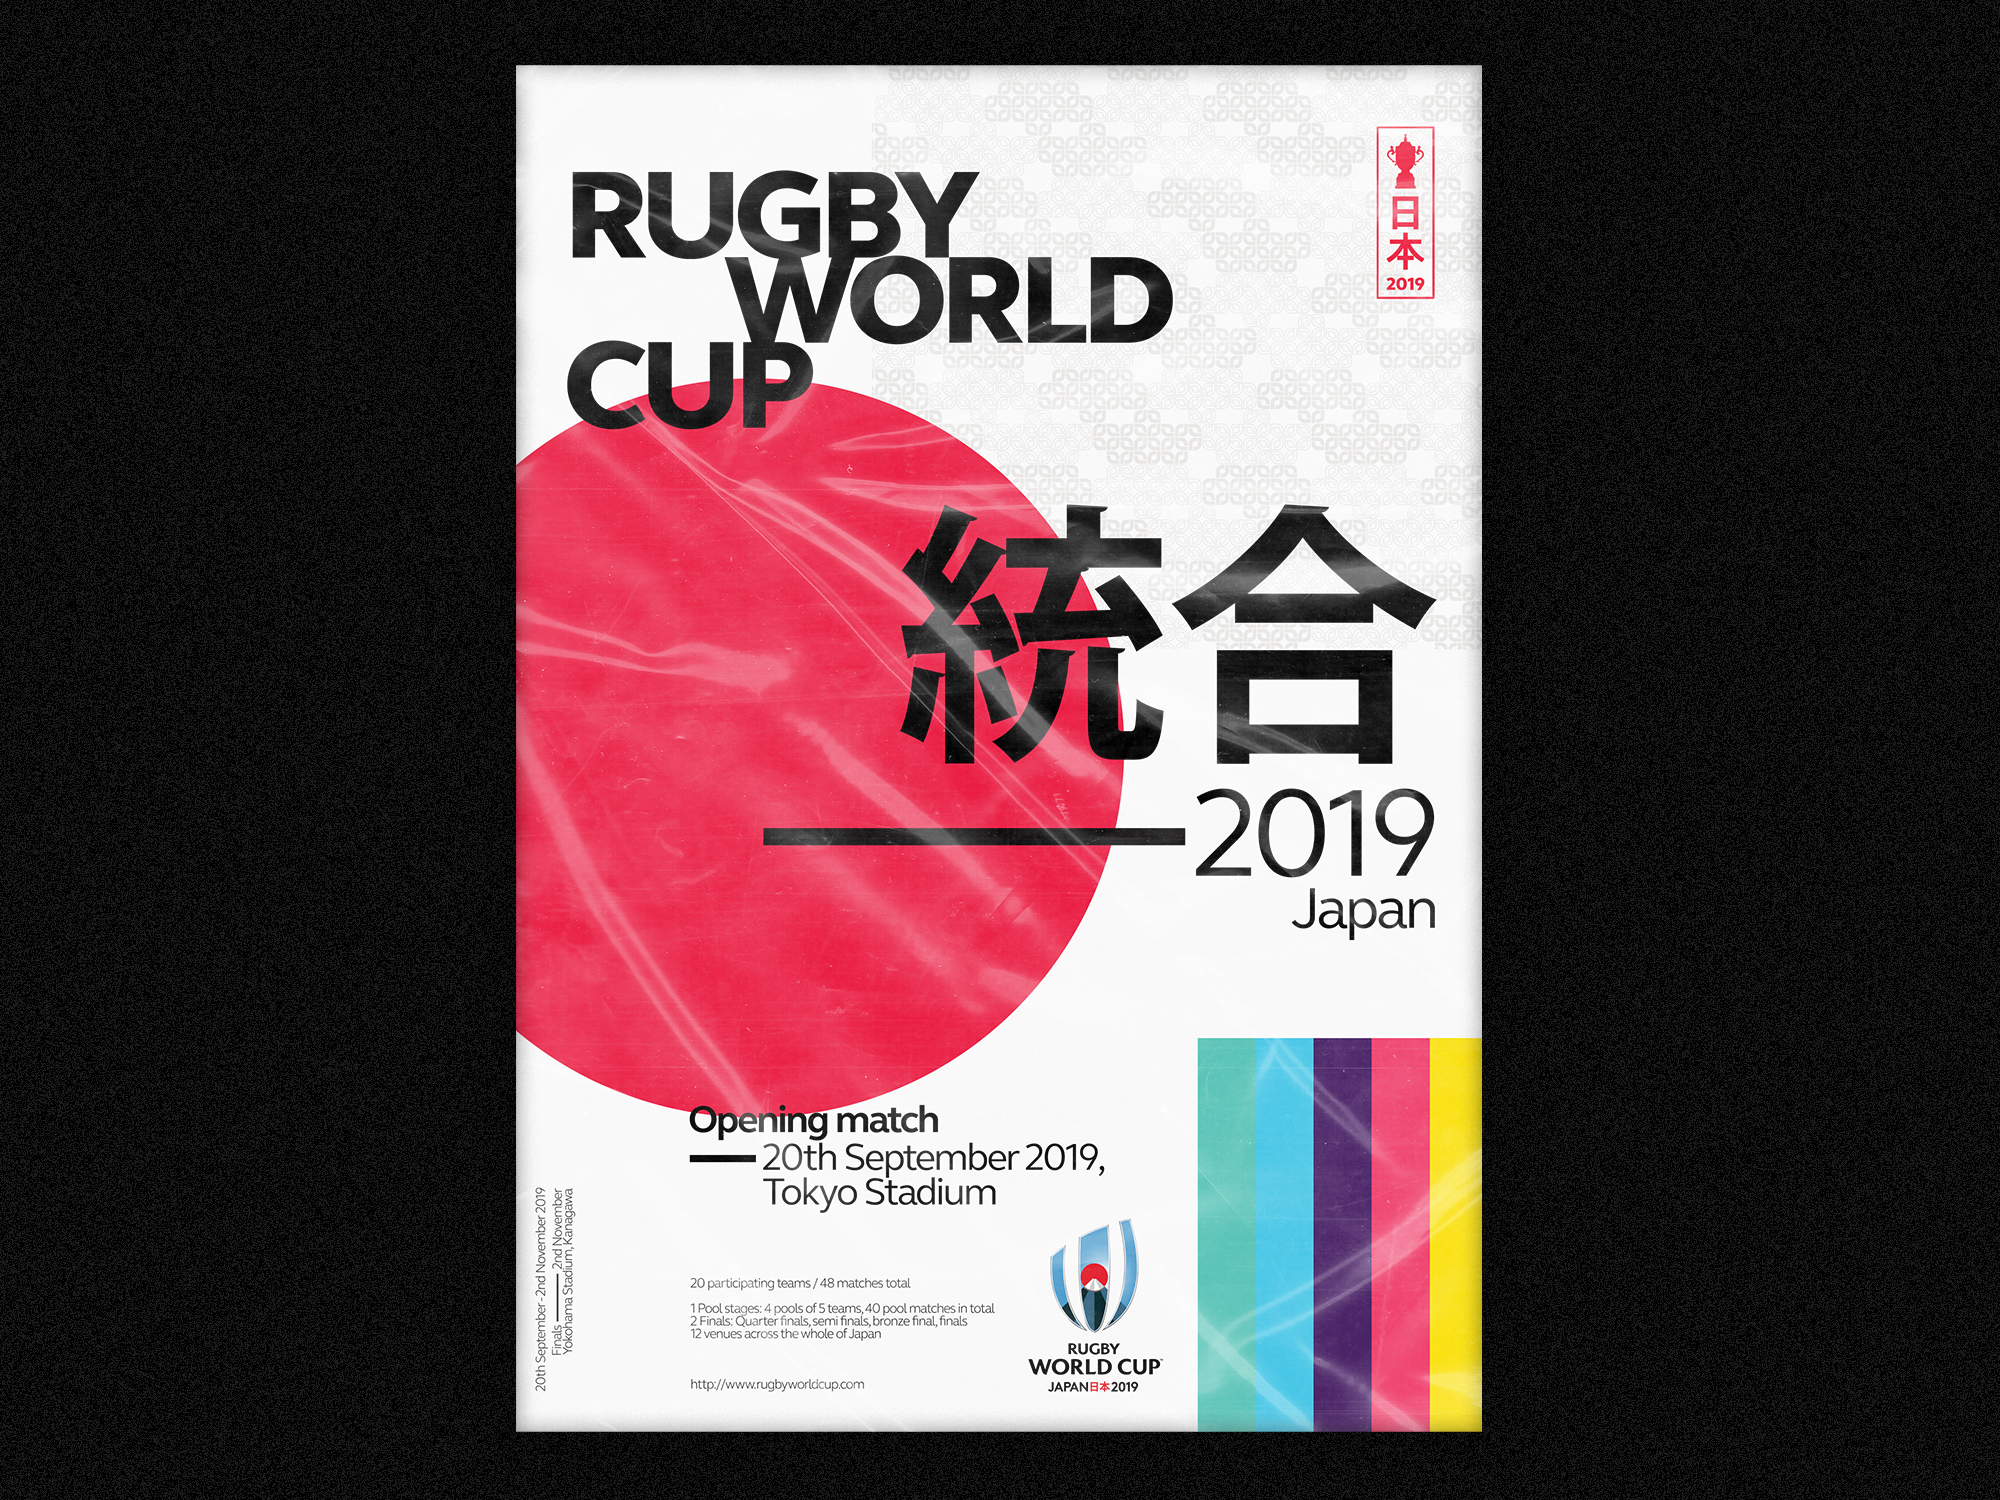 Download Wallpapers 2019 Rugby World Cup Logo 4k Silk Texture Emblem Japan 2019 Gray Silk Flag Ninth World Championship Rugby Besthqwallpapers Com Rugby World Cup World Cup Rugby